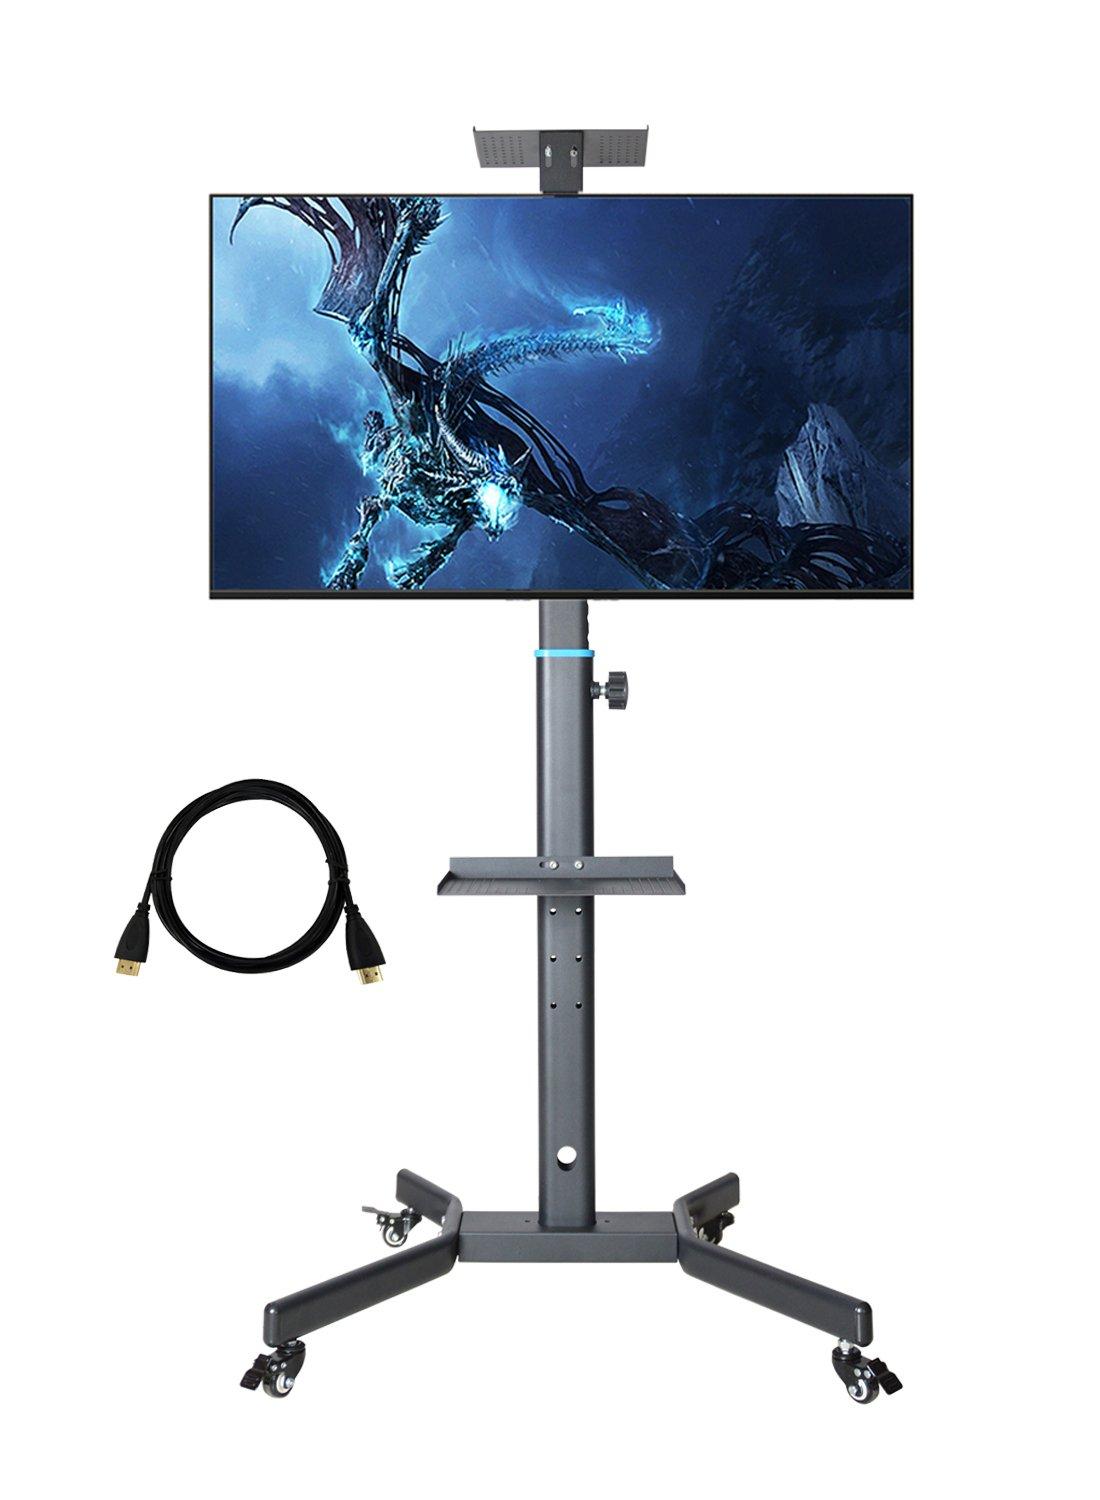 CNYF PTS008 Mobile TV Cart for LCD LED Plasma Flat Screen Panel Trolley Floor Stand with Locking Wheels | Fits 32'' to 55''